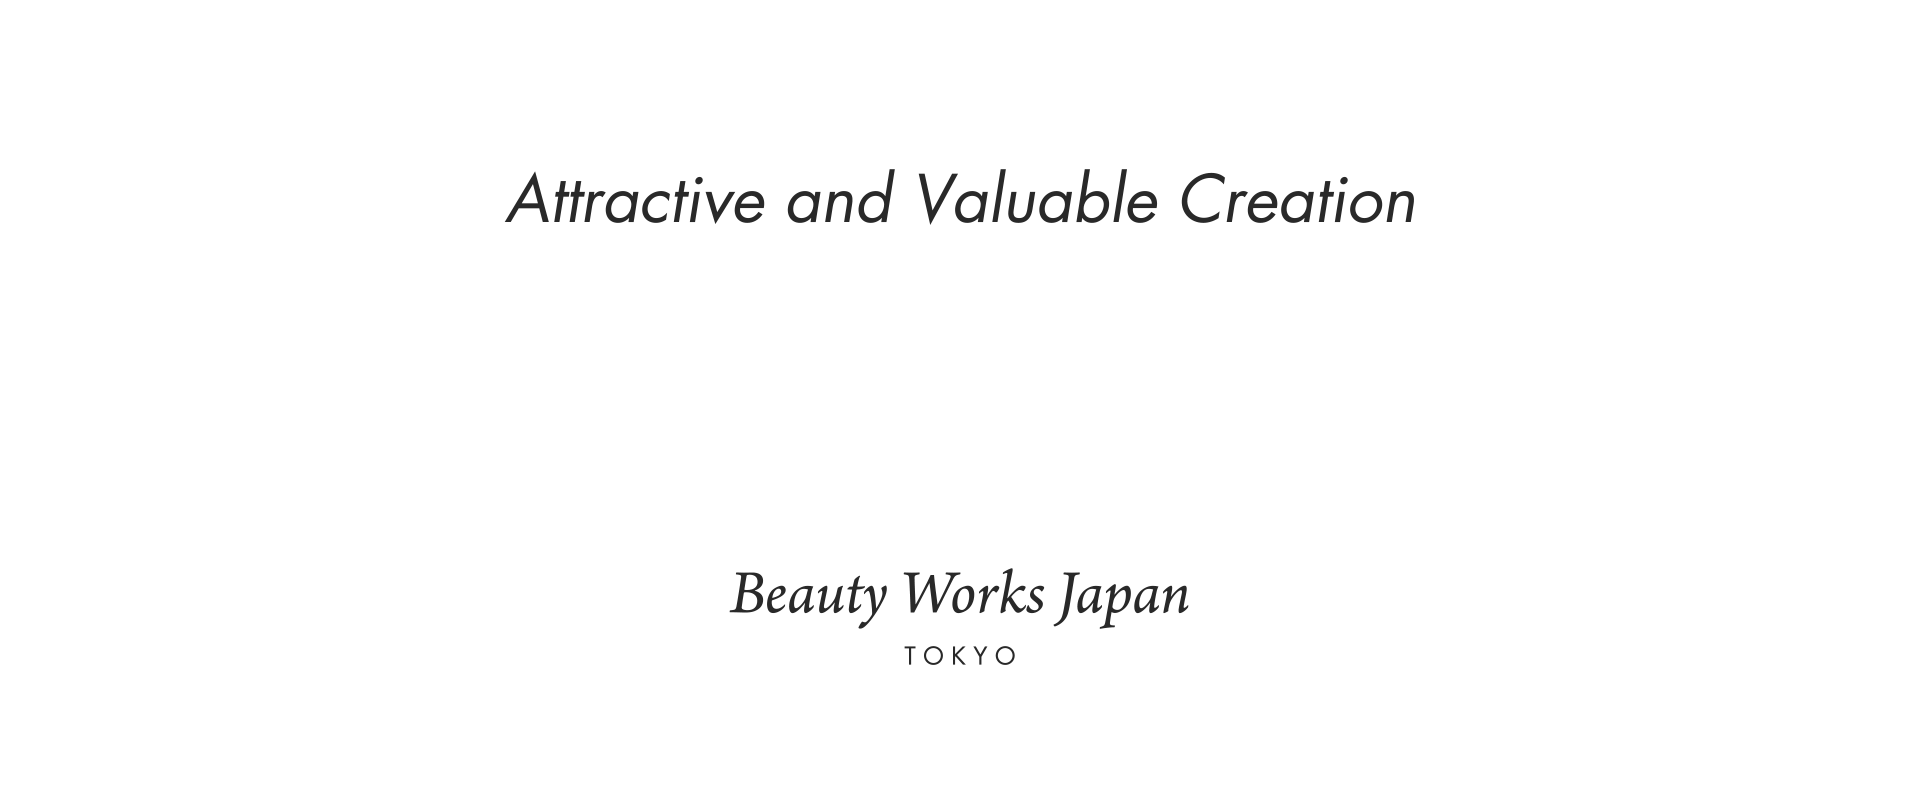 Beauty Works Japan